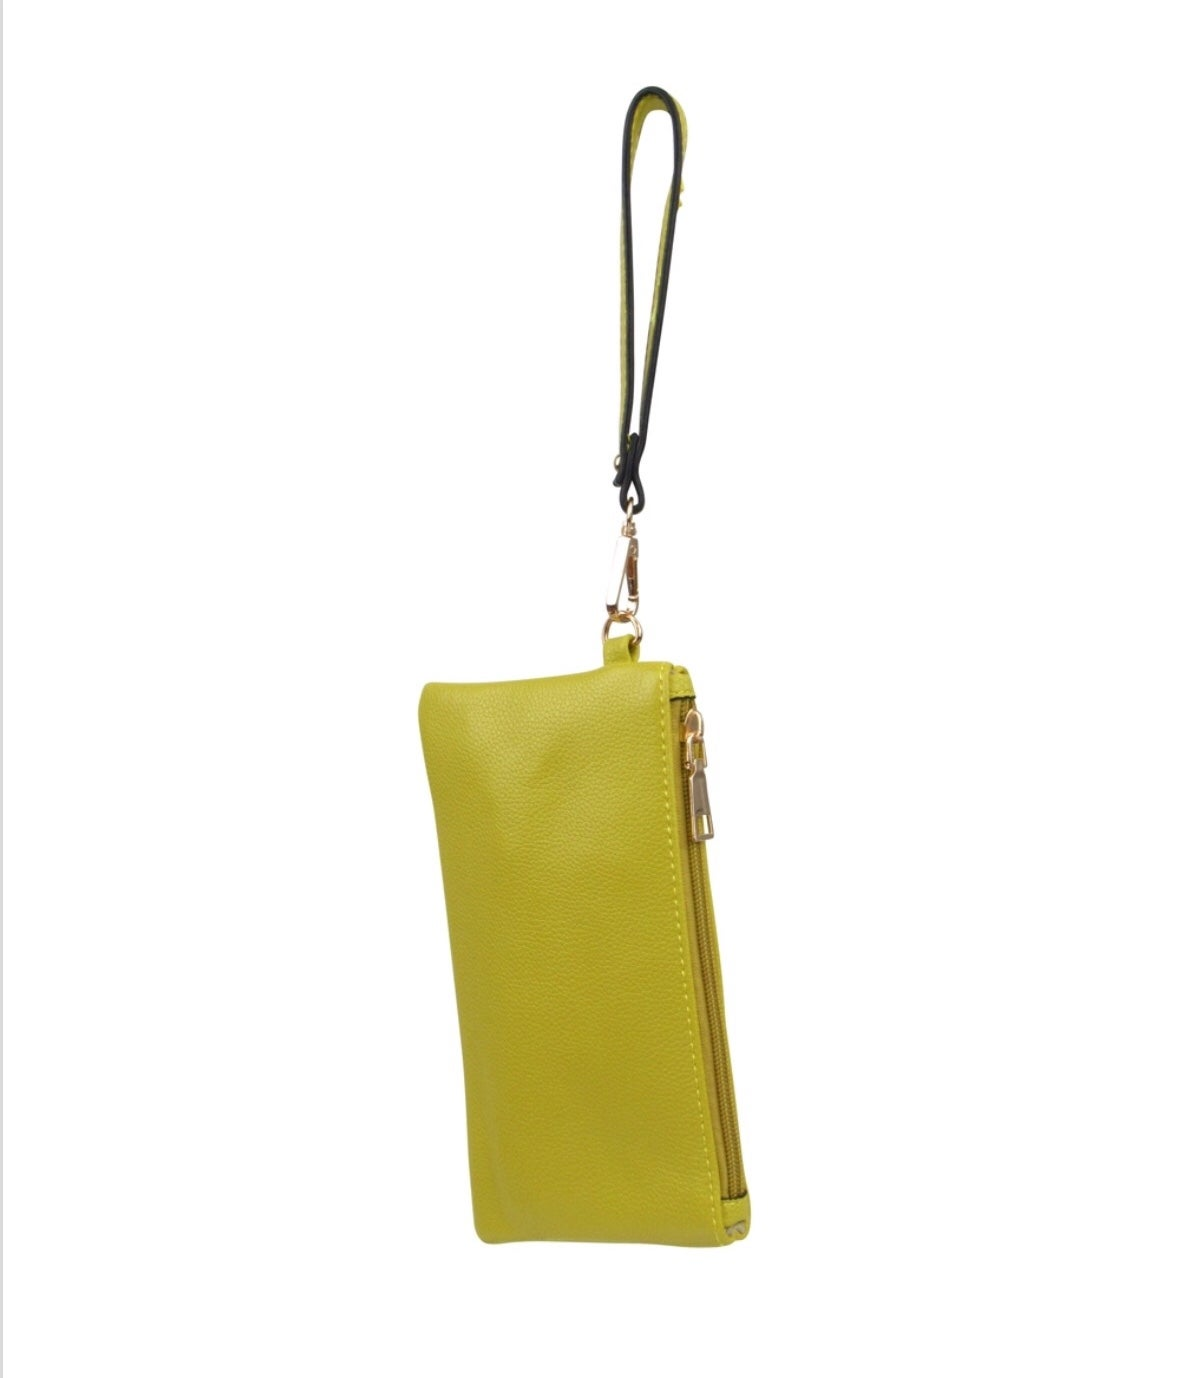 Image of Yorkdale Wristlet (original price:$11.50)